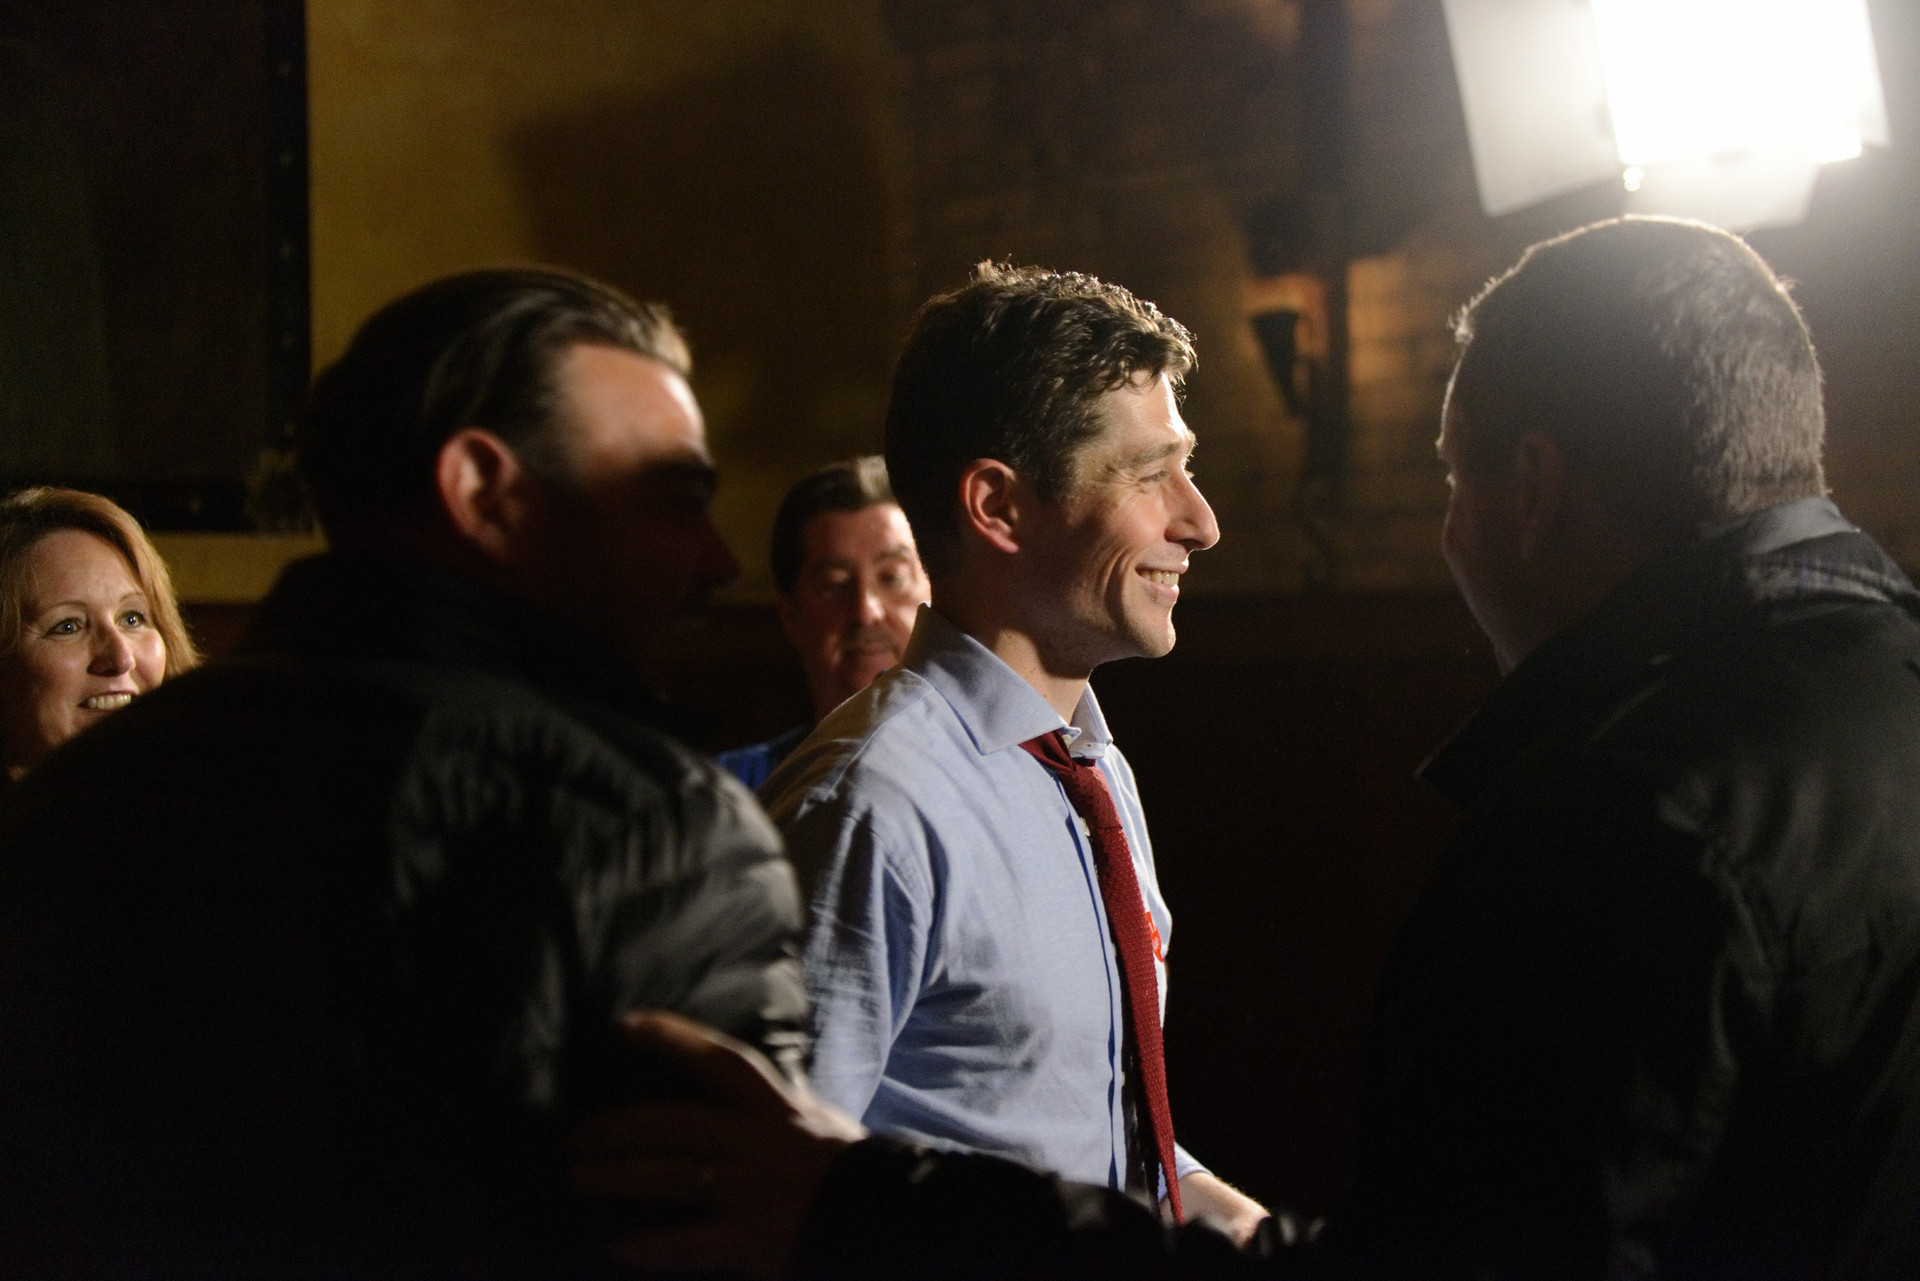 Jacob Frey's Election Party